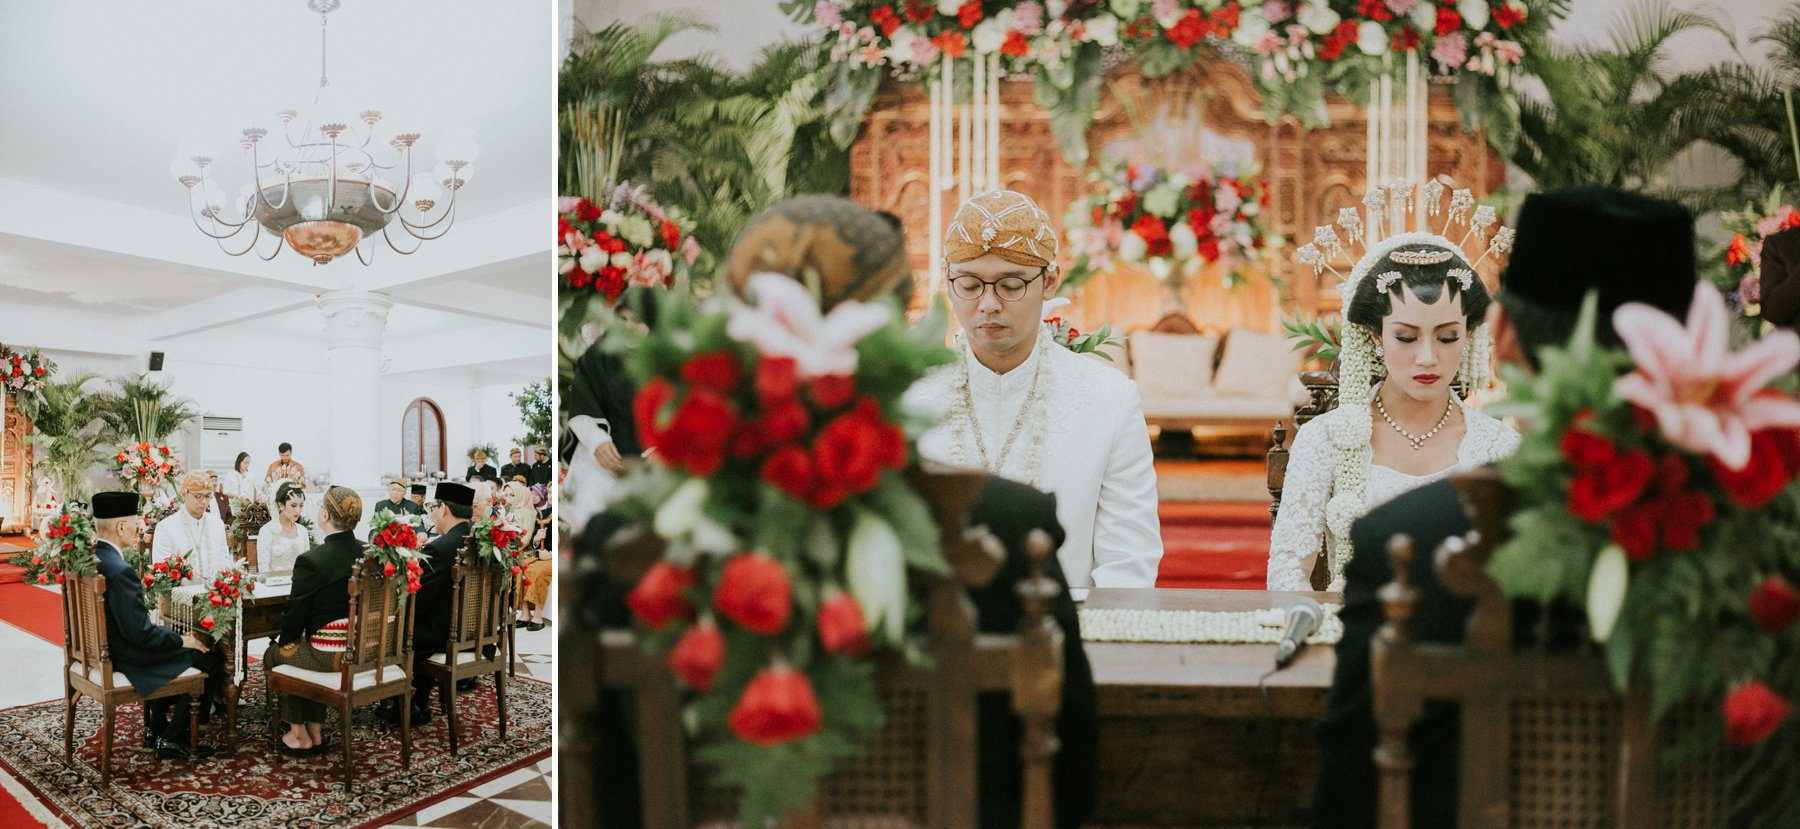 Sampoerna_Strategic_Wedding_Antijitters_Photo_0038